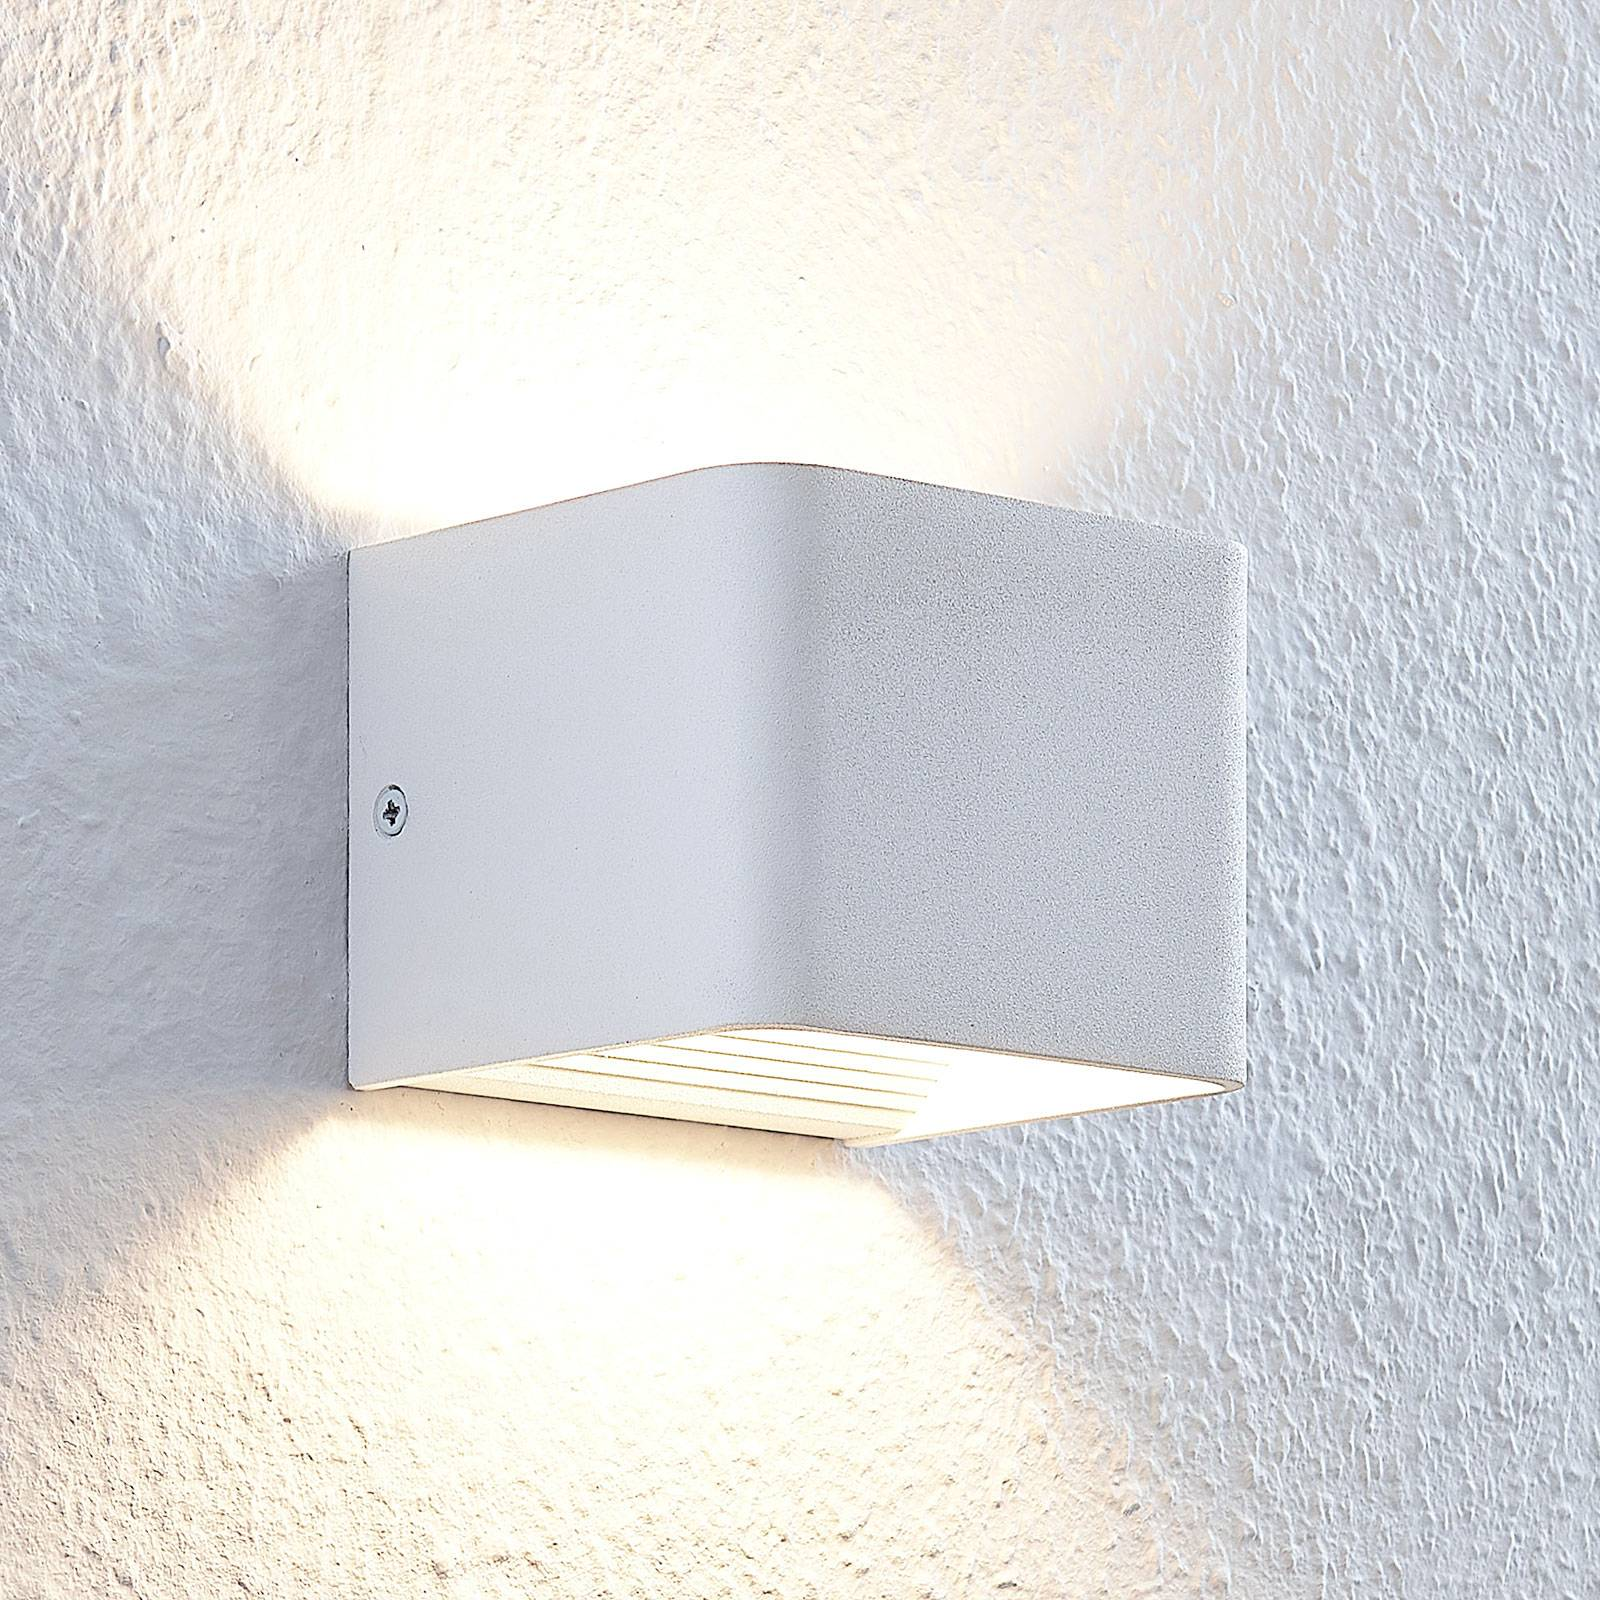 Lonisa - LED wall light with cosy lighting from Lindby